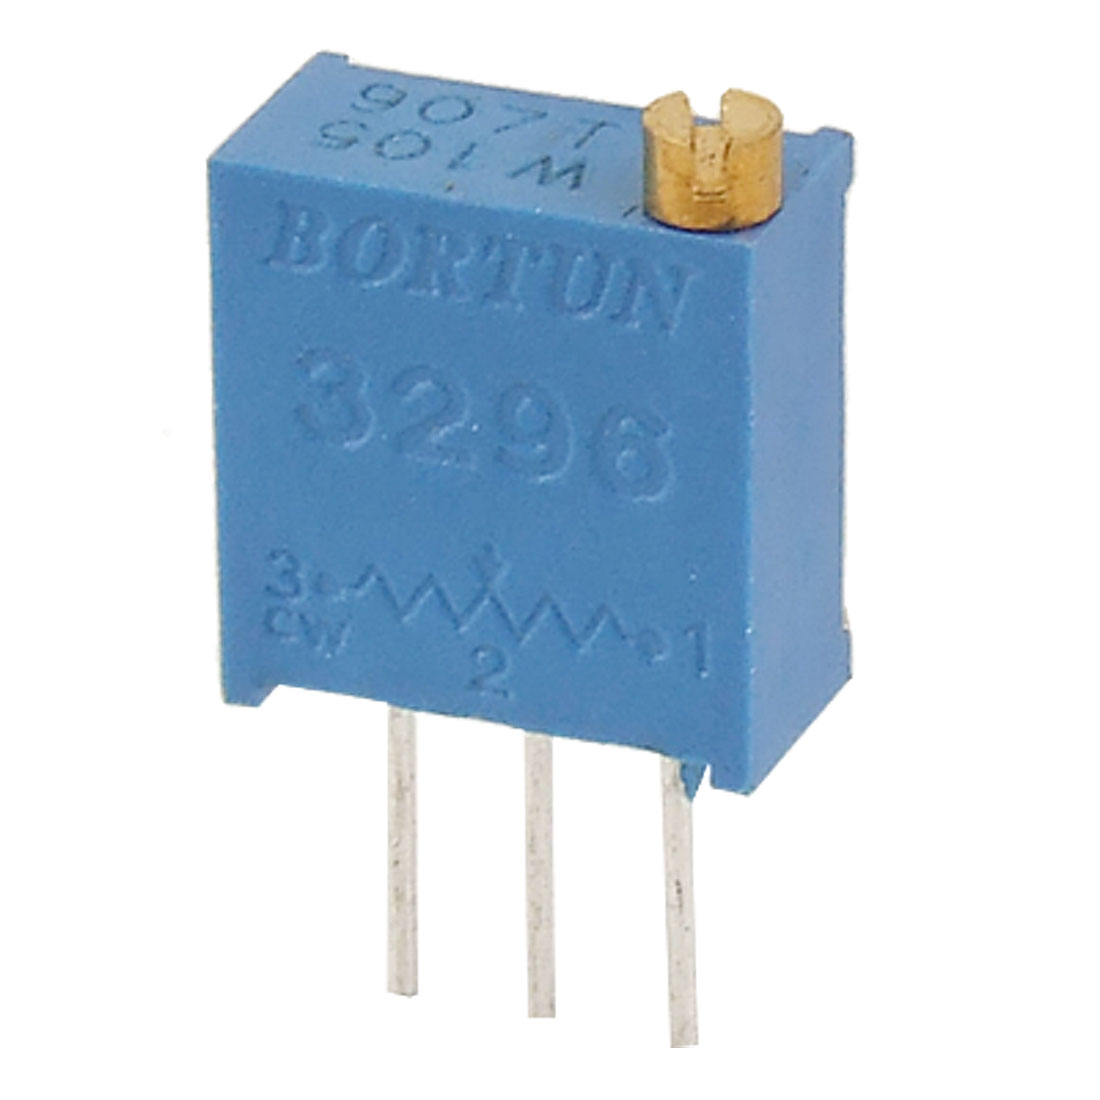 50 Pcs 3296W 1M ohm Multiturn Potentiometer Pot Variable Resistor